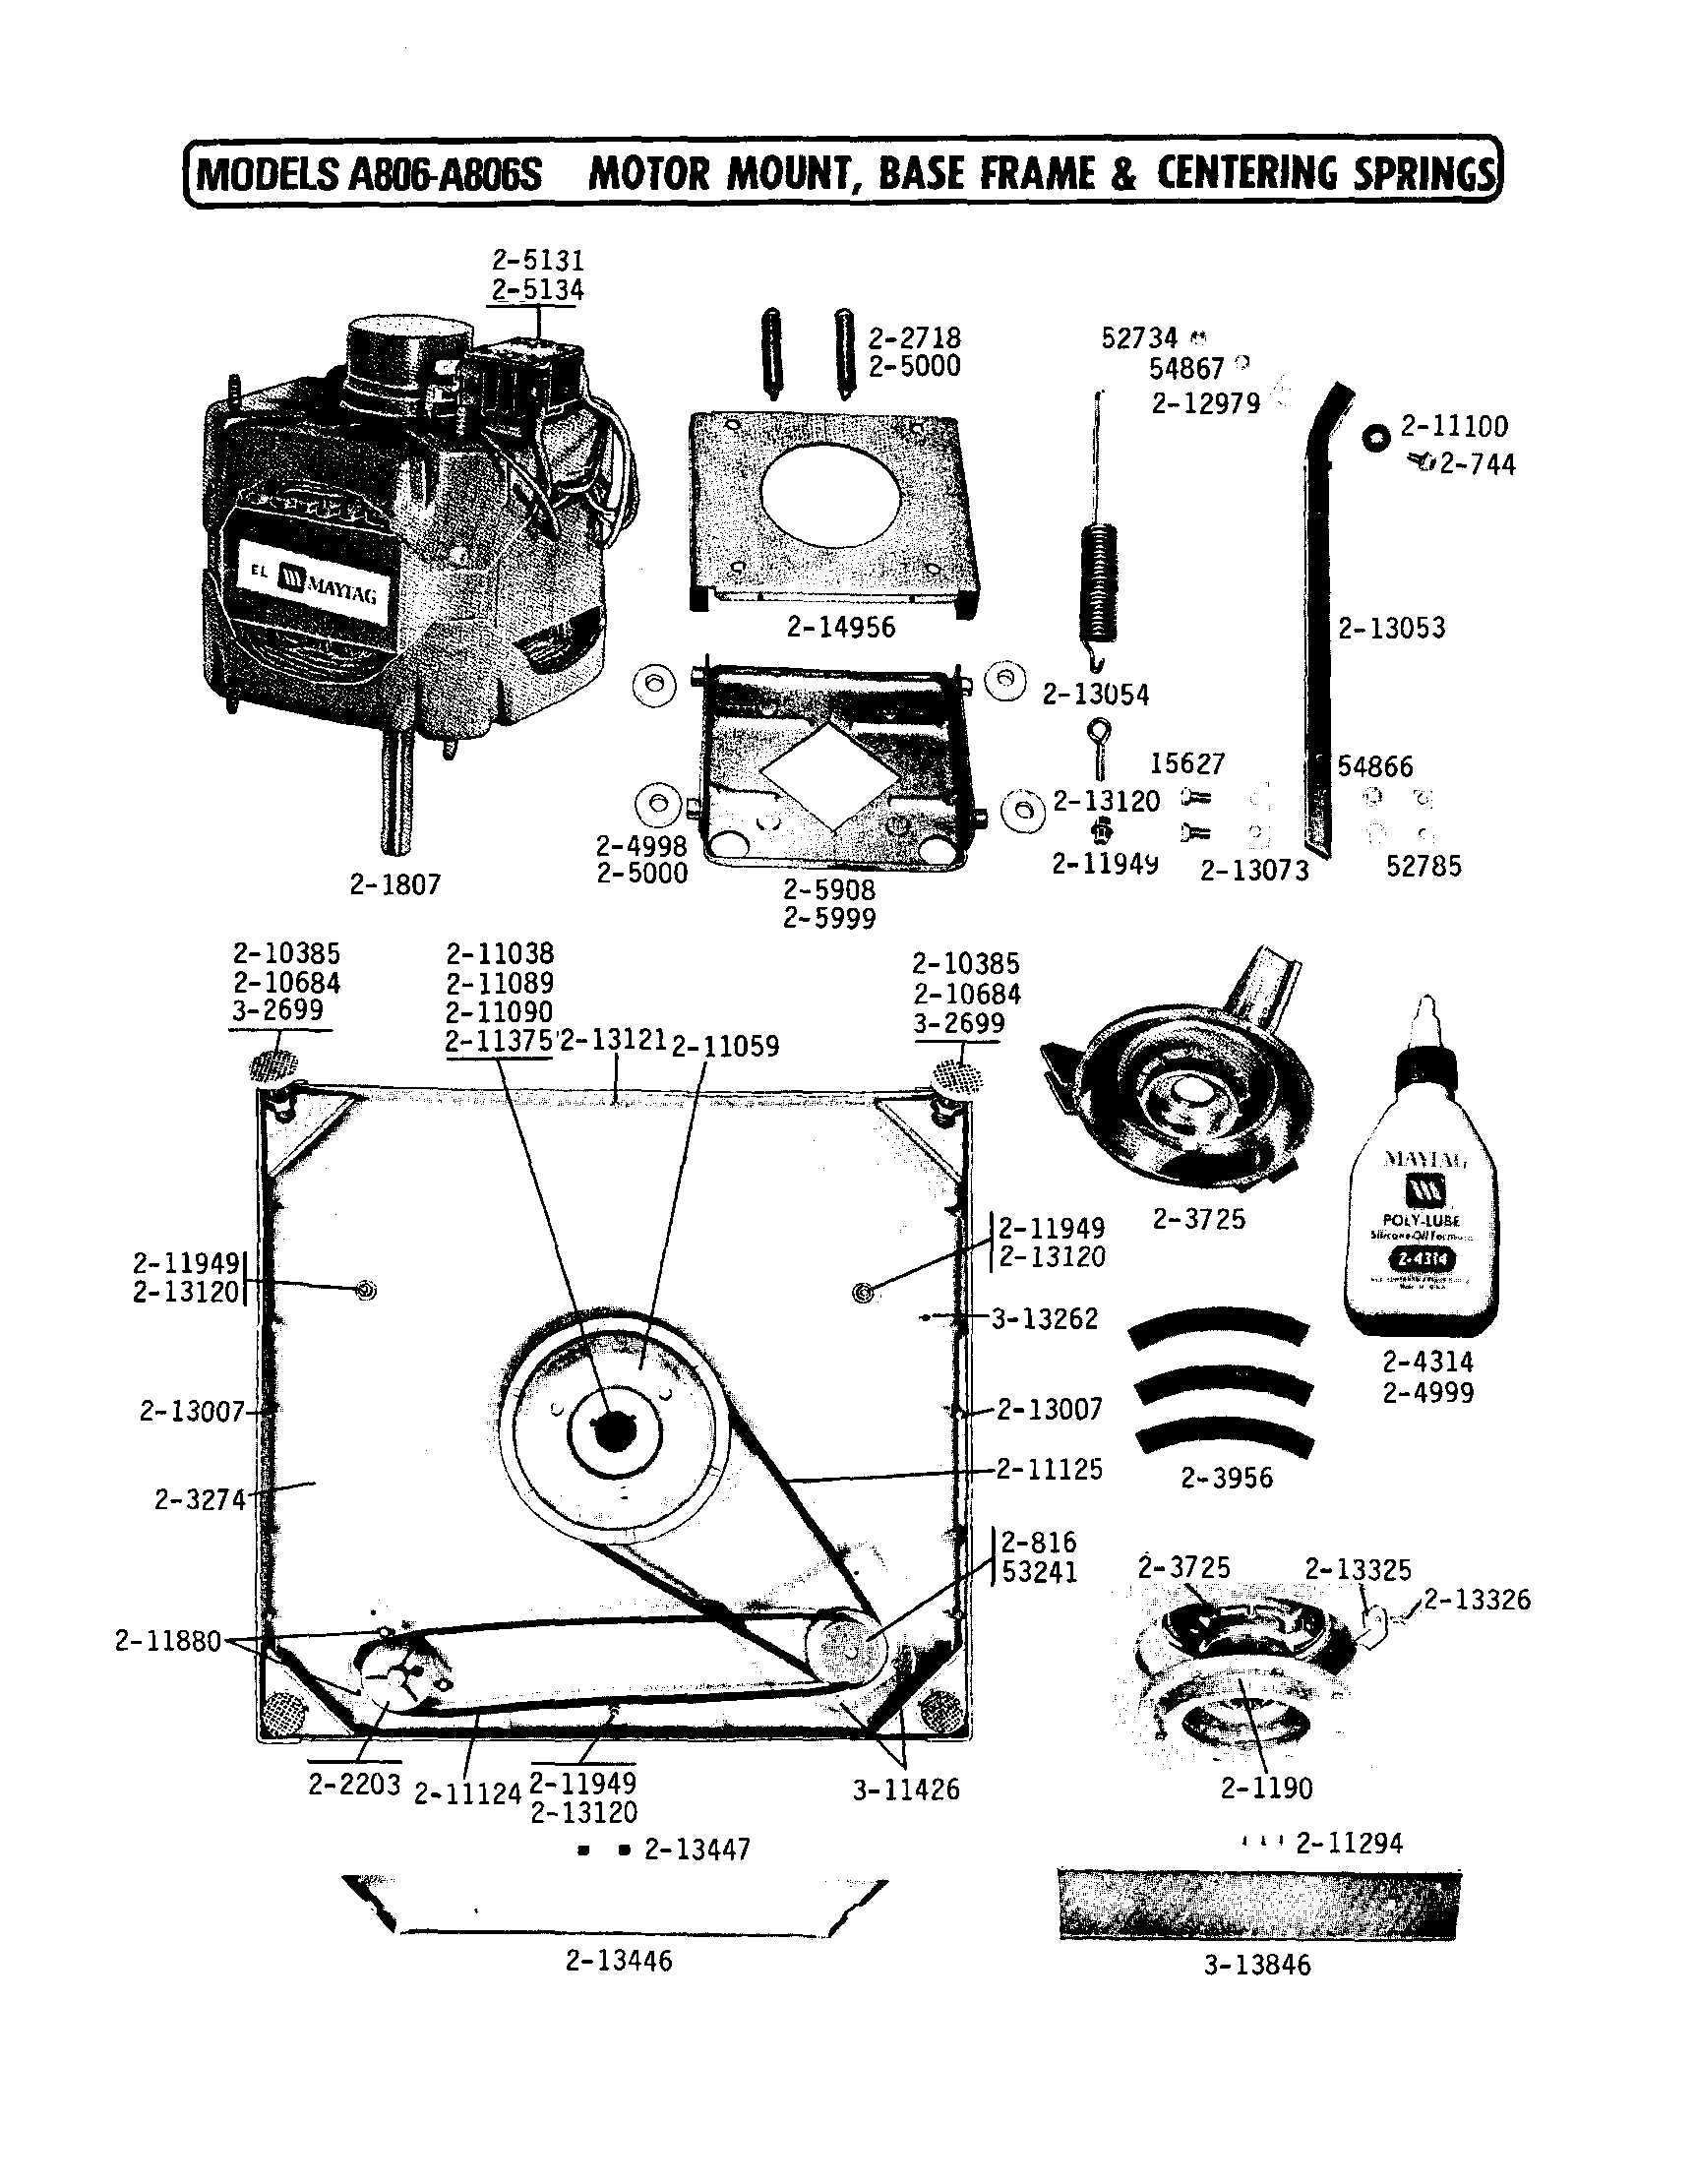 Schematic single phase timer diagram wire center maytag a806 timer stove clocks and appliance timers rh appliancetimers com sestos b1s timer wiring diagram swarovskicordoba Gallery